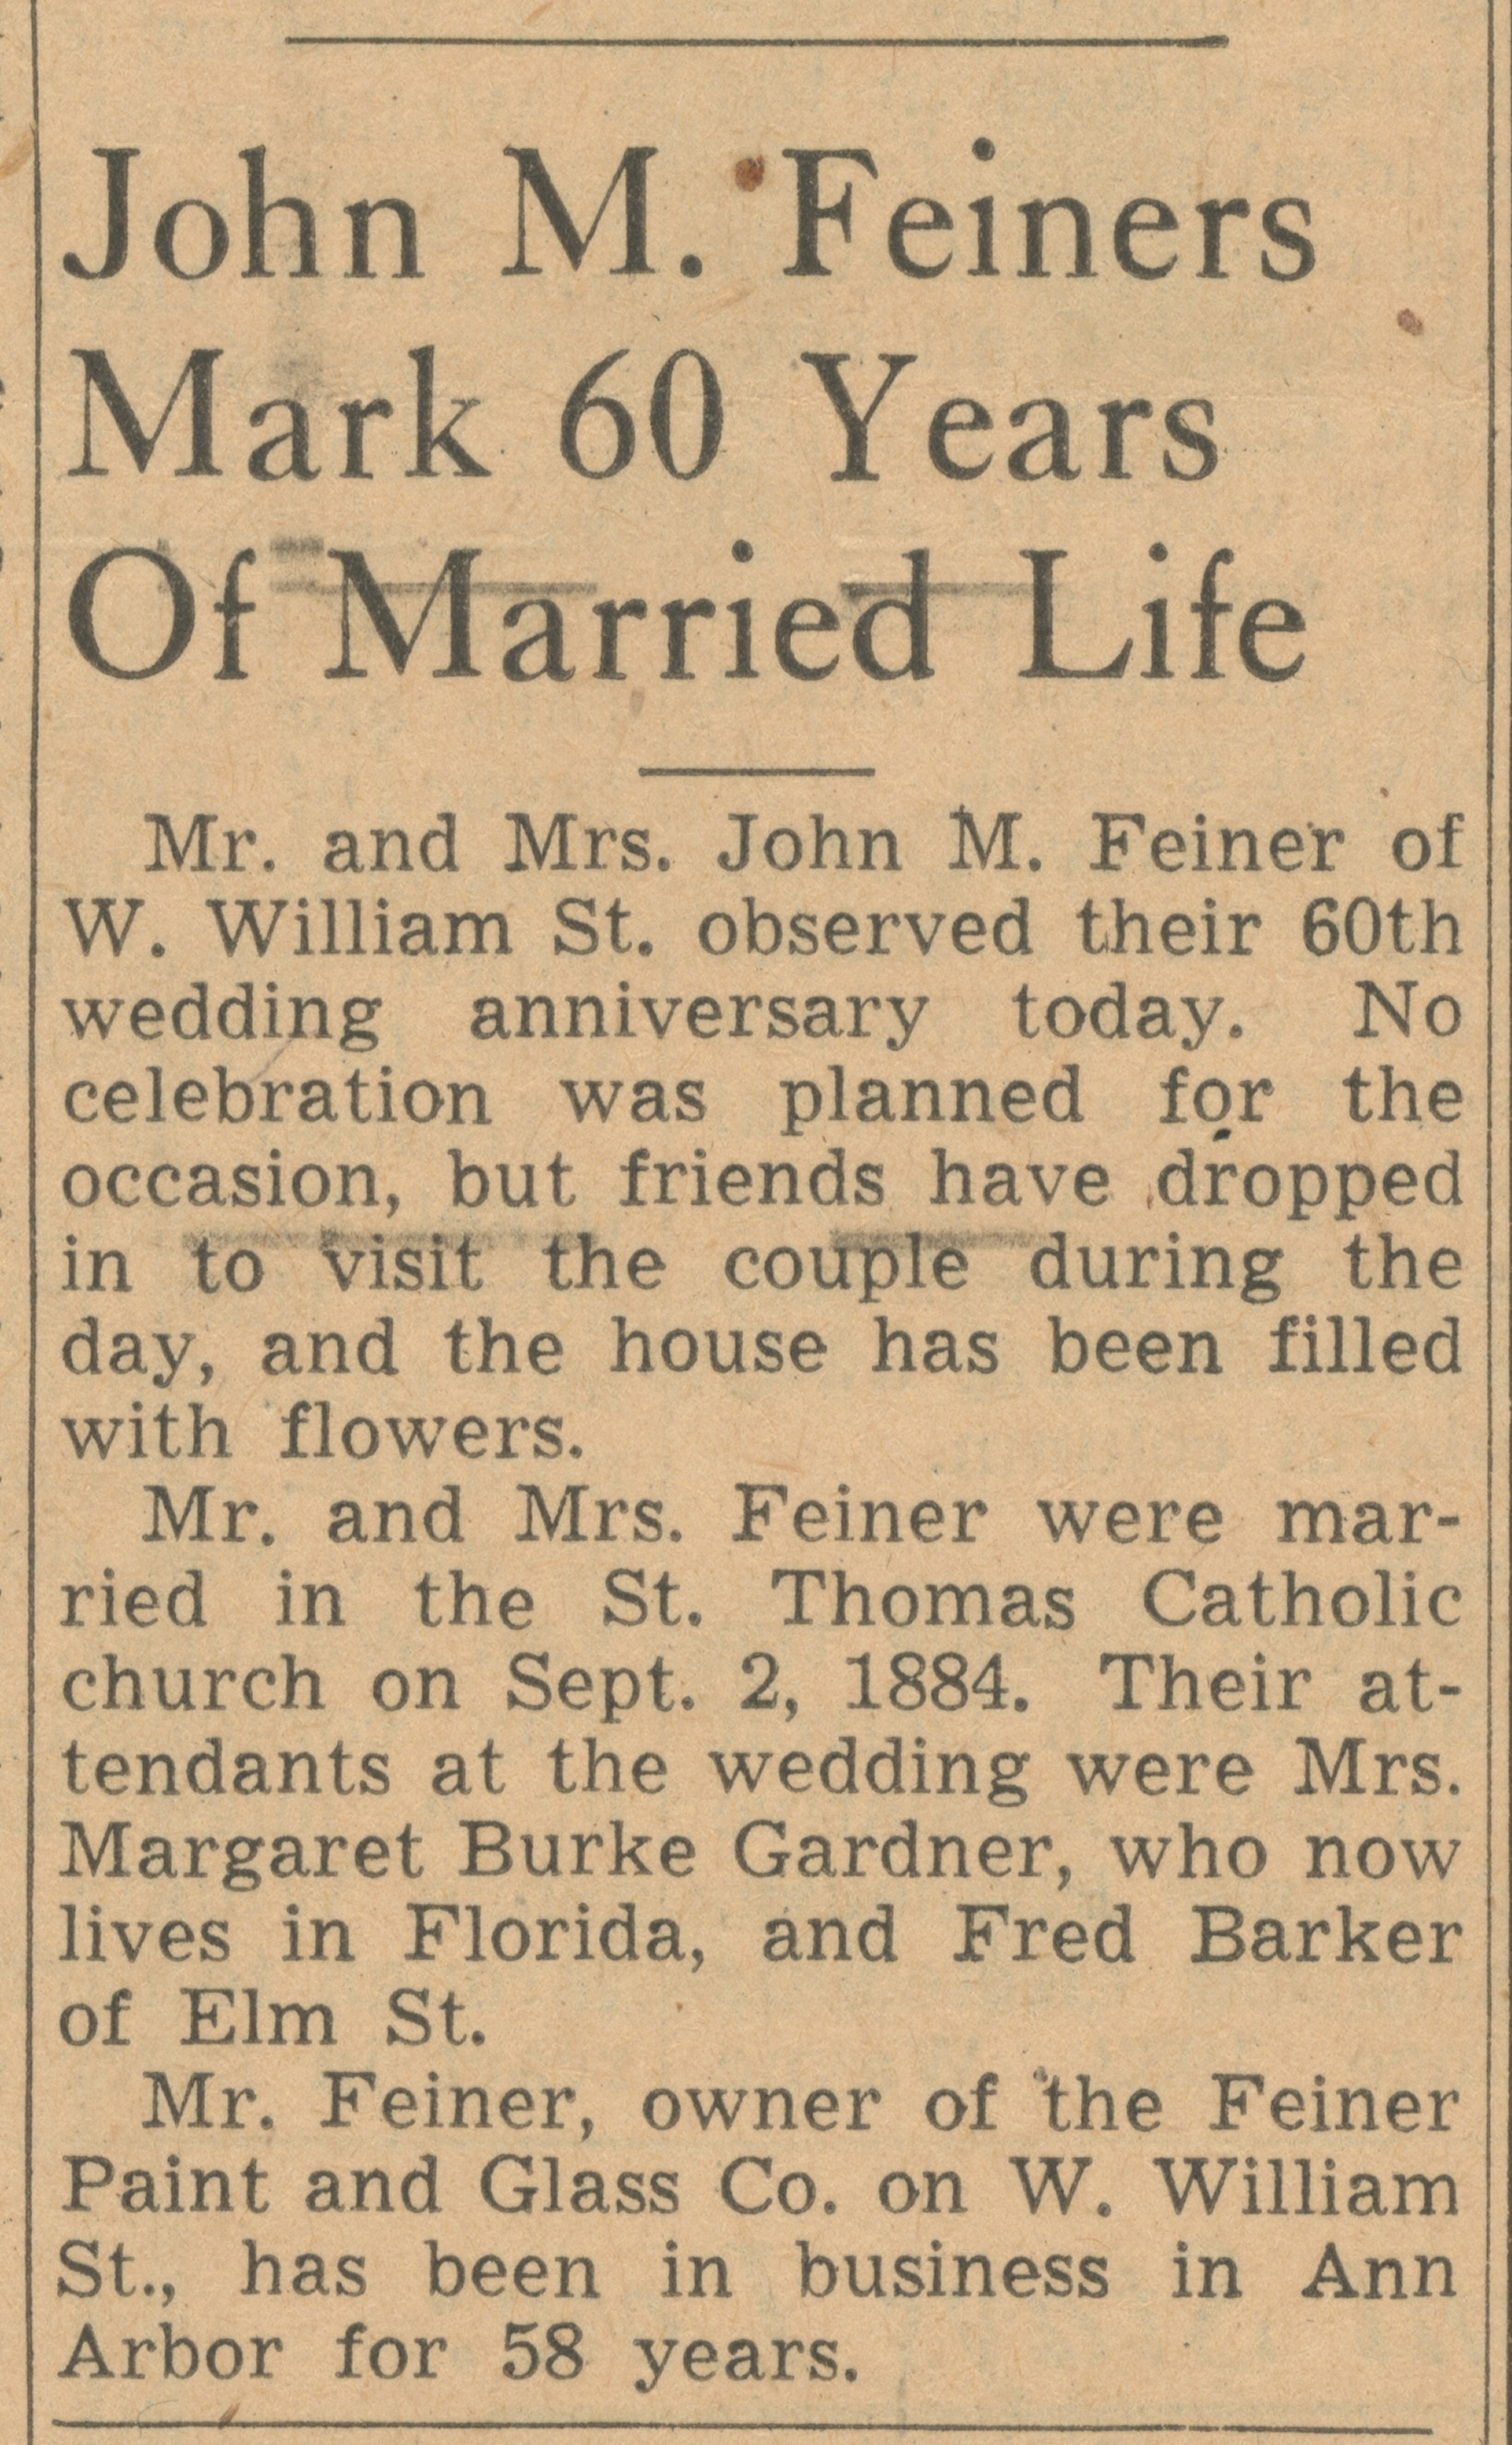 John M. Feiners Mark 60 Years Of Married Life image